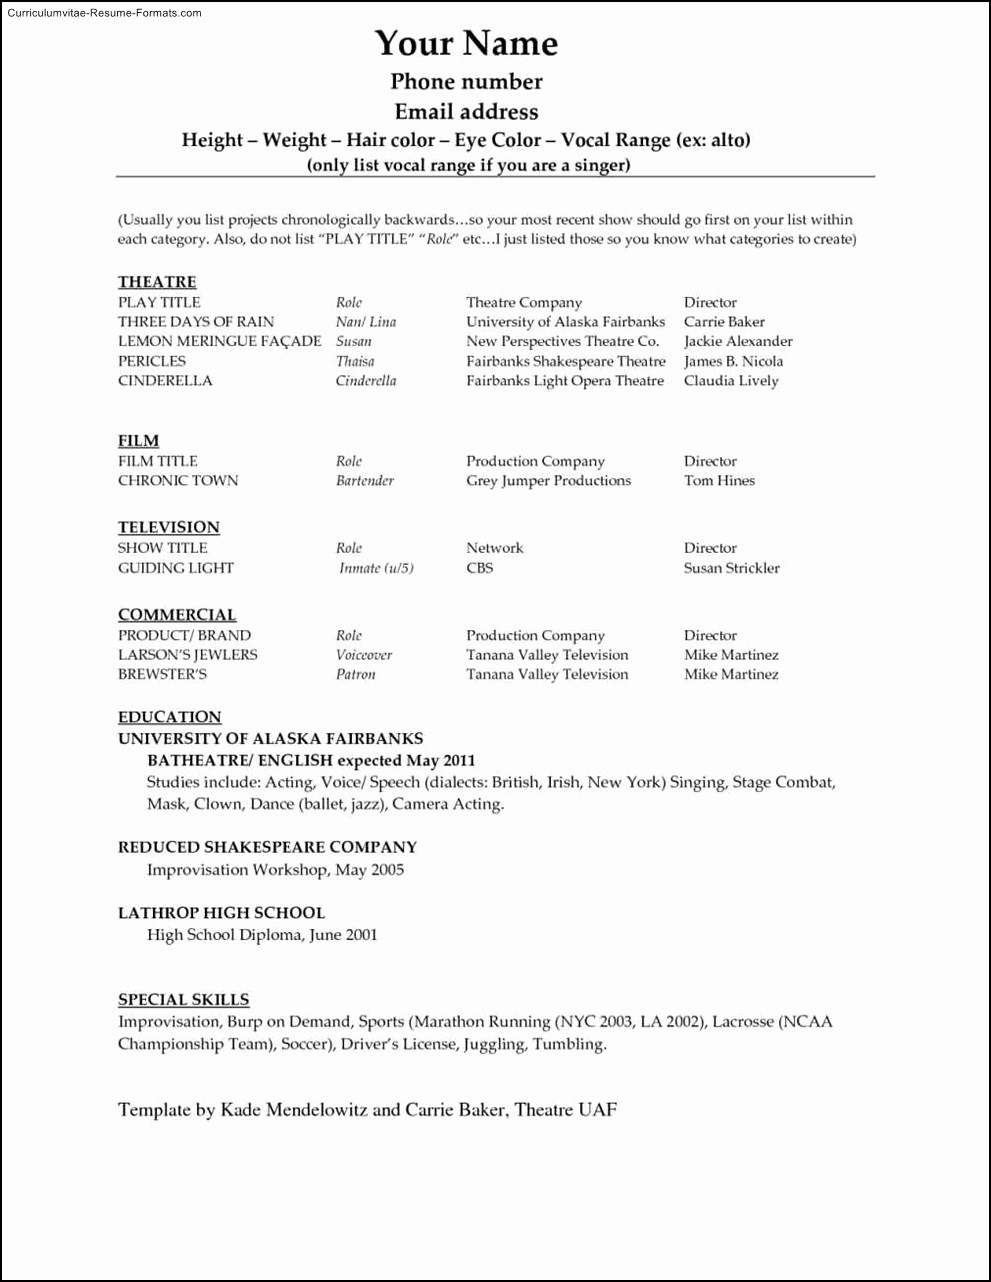 Professional Resume Templates Microsoft Word Elegant Microsoft Fice Resume Templates 2013 Free Samples